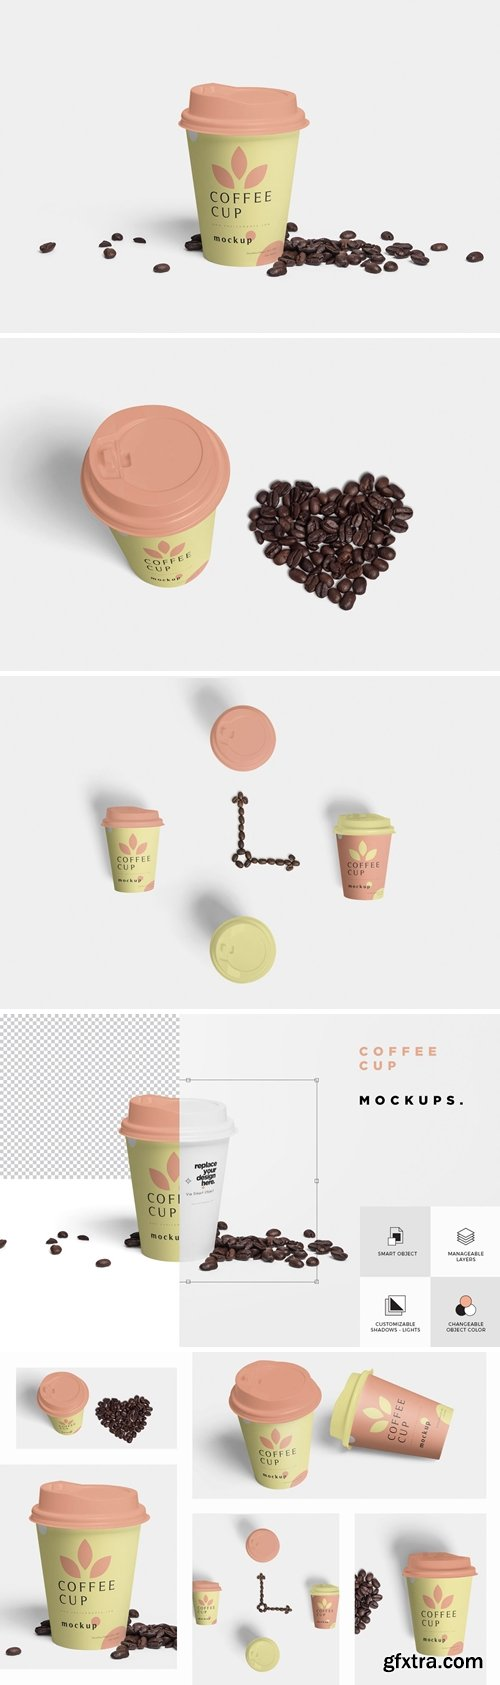 CM - Disposable Coffee Cup Mockups 3516761